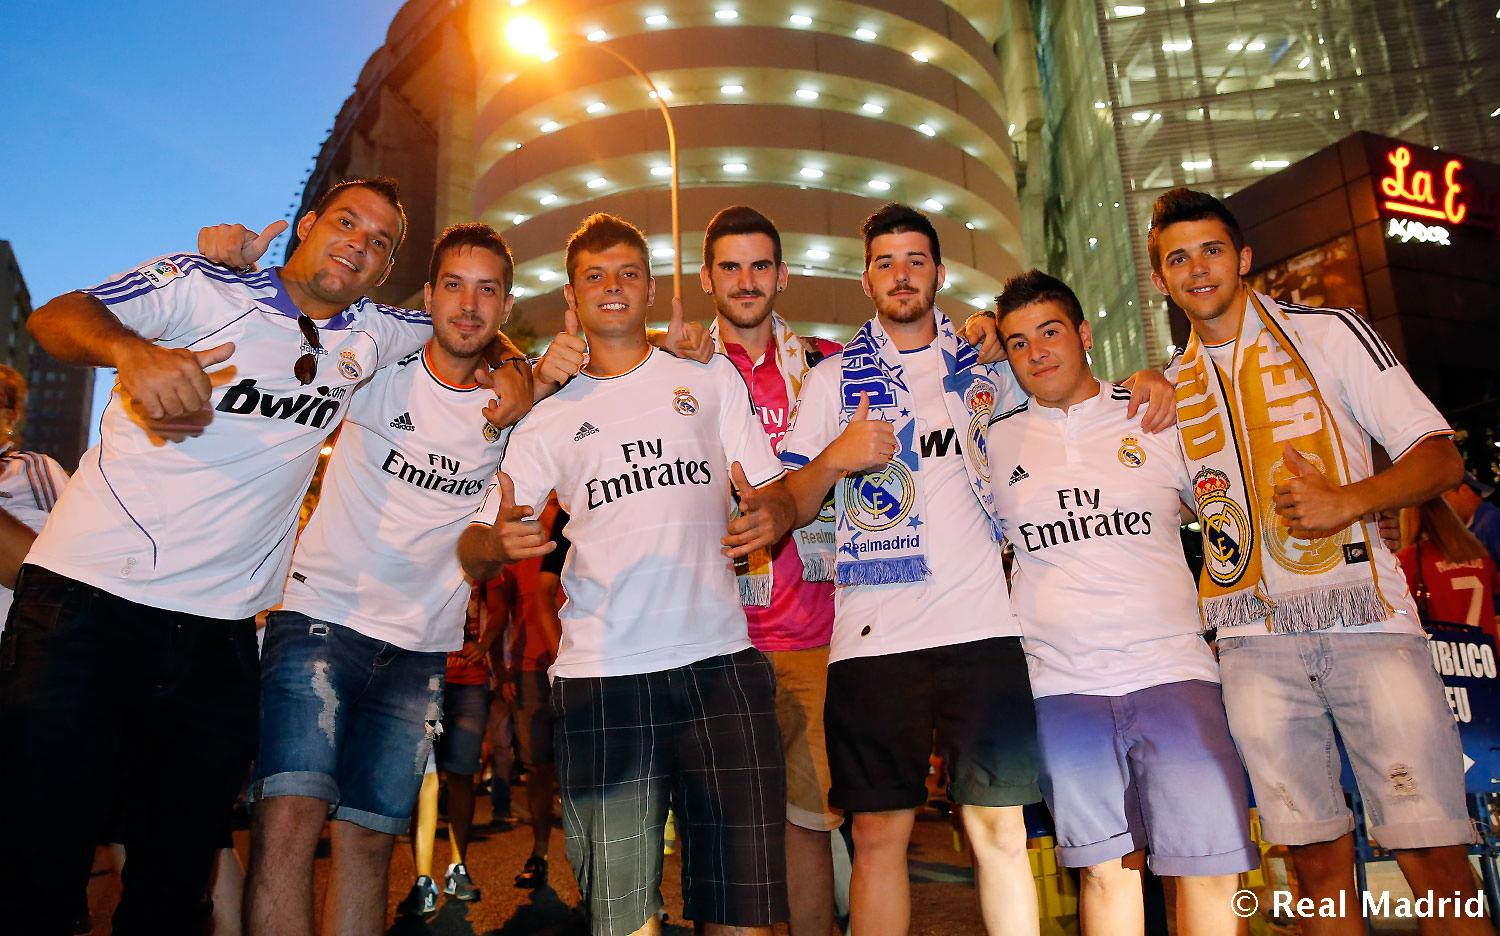 Real Madrid - Ambiente previo al Real Madrid - Atlético de Madrid - 19-08-2014